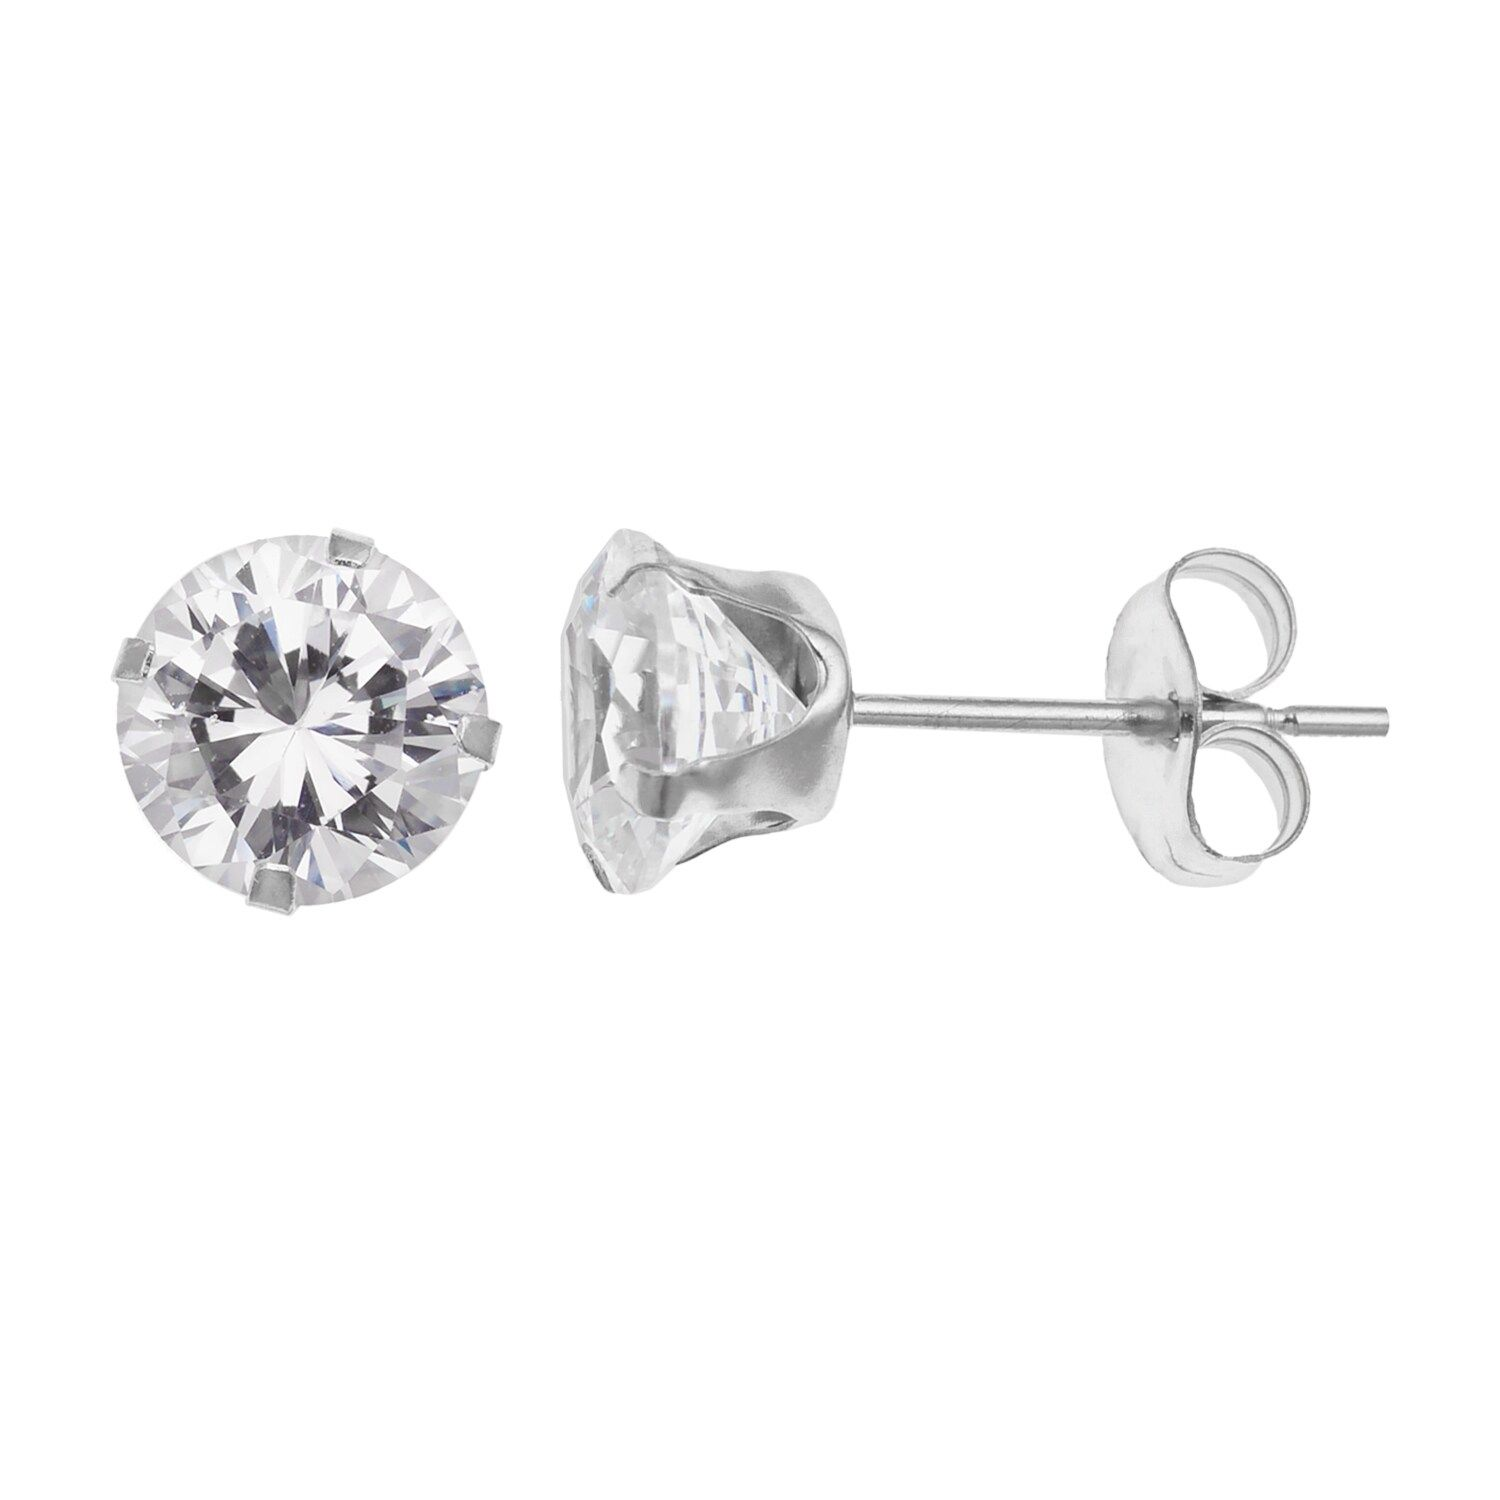 10k White Gold Cubic Zirconia Stud Earrings In 2020 Stud Earrings White Gold Earrings